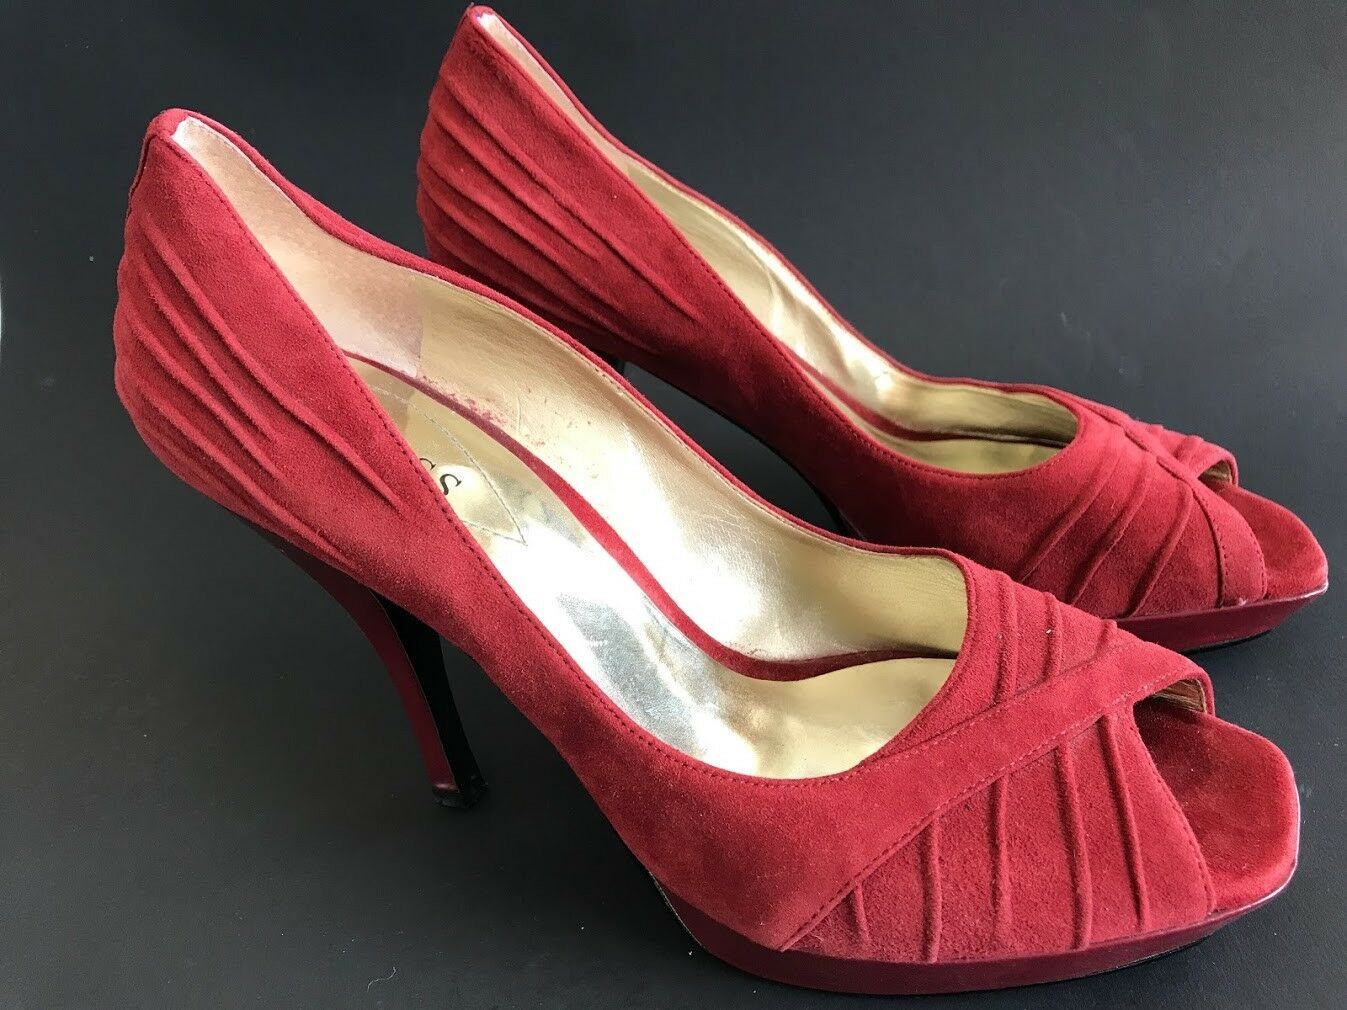 GUESS Wgaliza Red Suede Leather Platform Peep Toe Heels Pumps shoes Women's 8.5